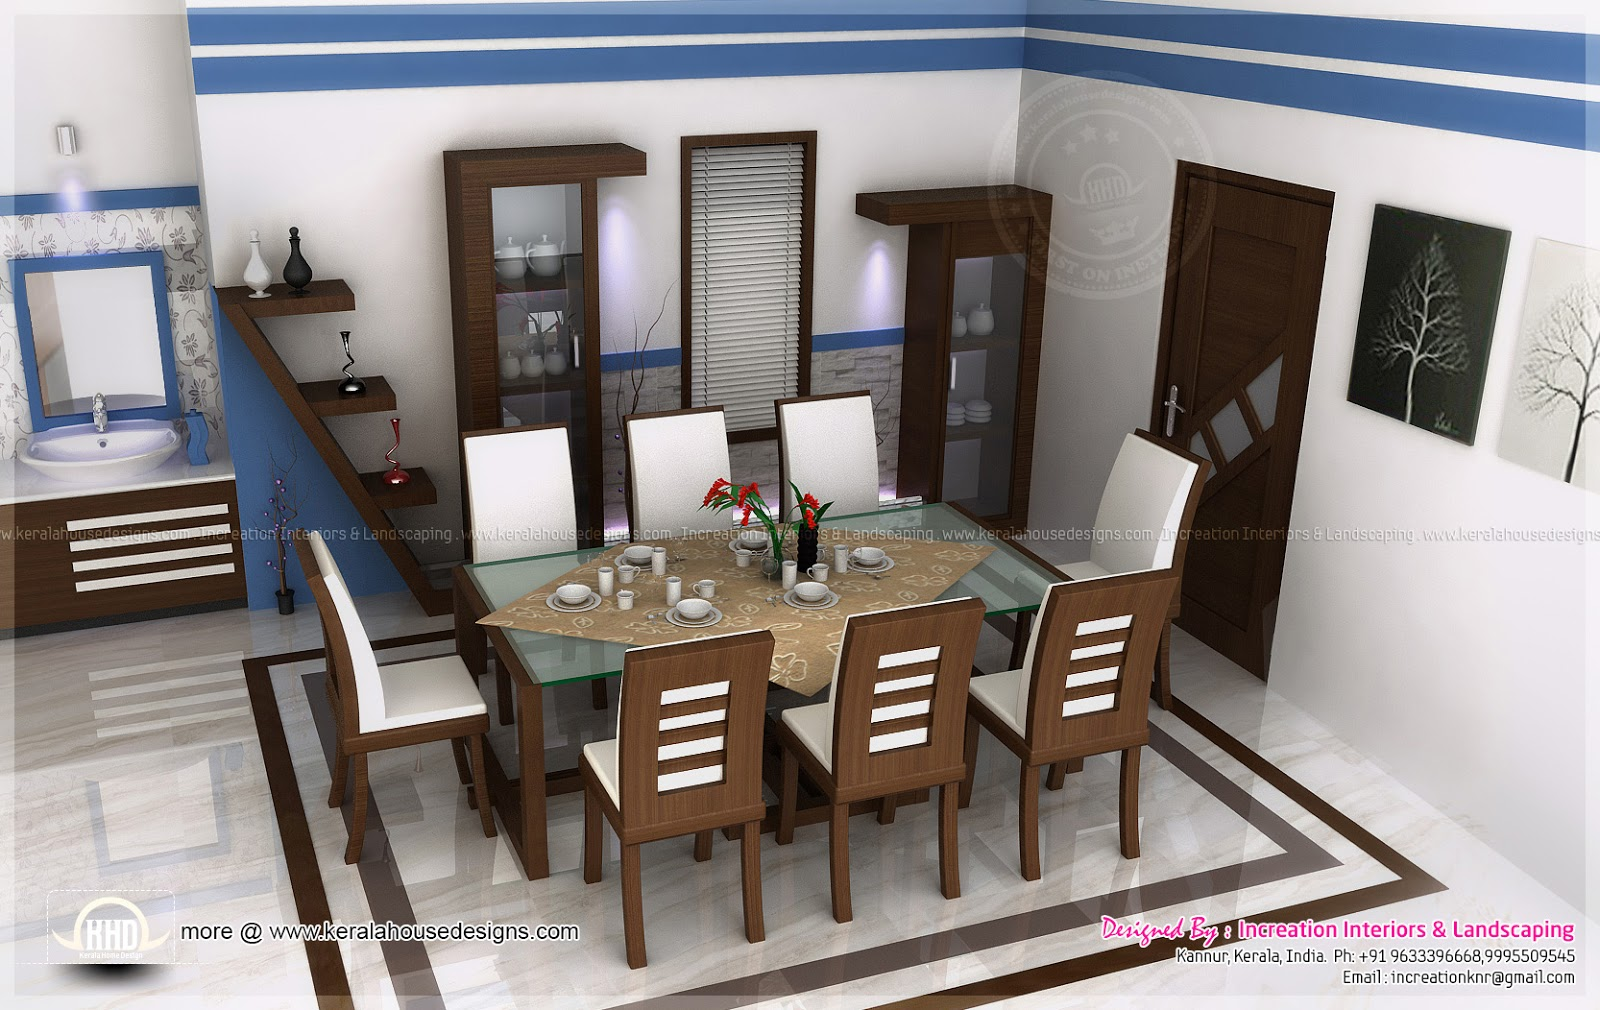 House interior ideas in 3d rendering kerala home design for House interior design dining room